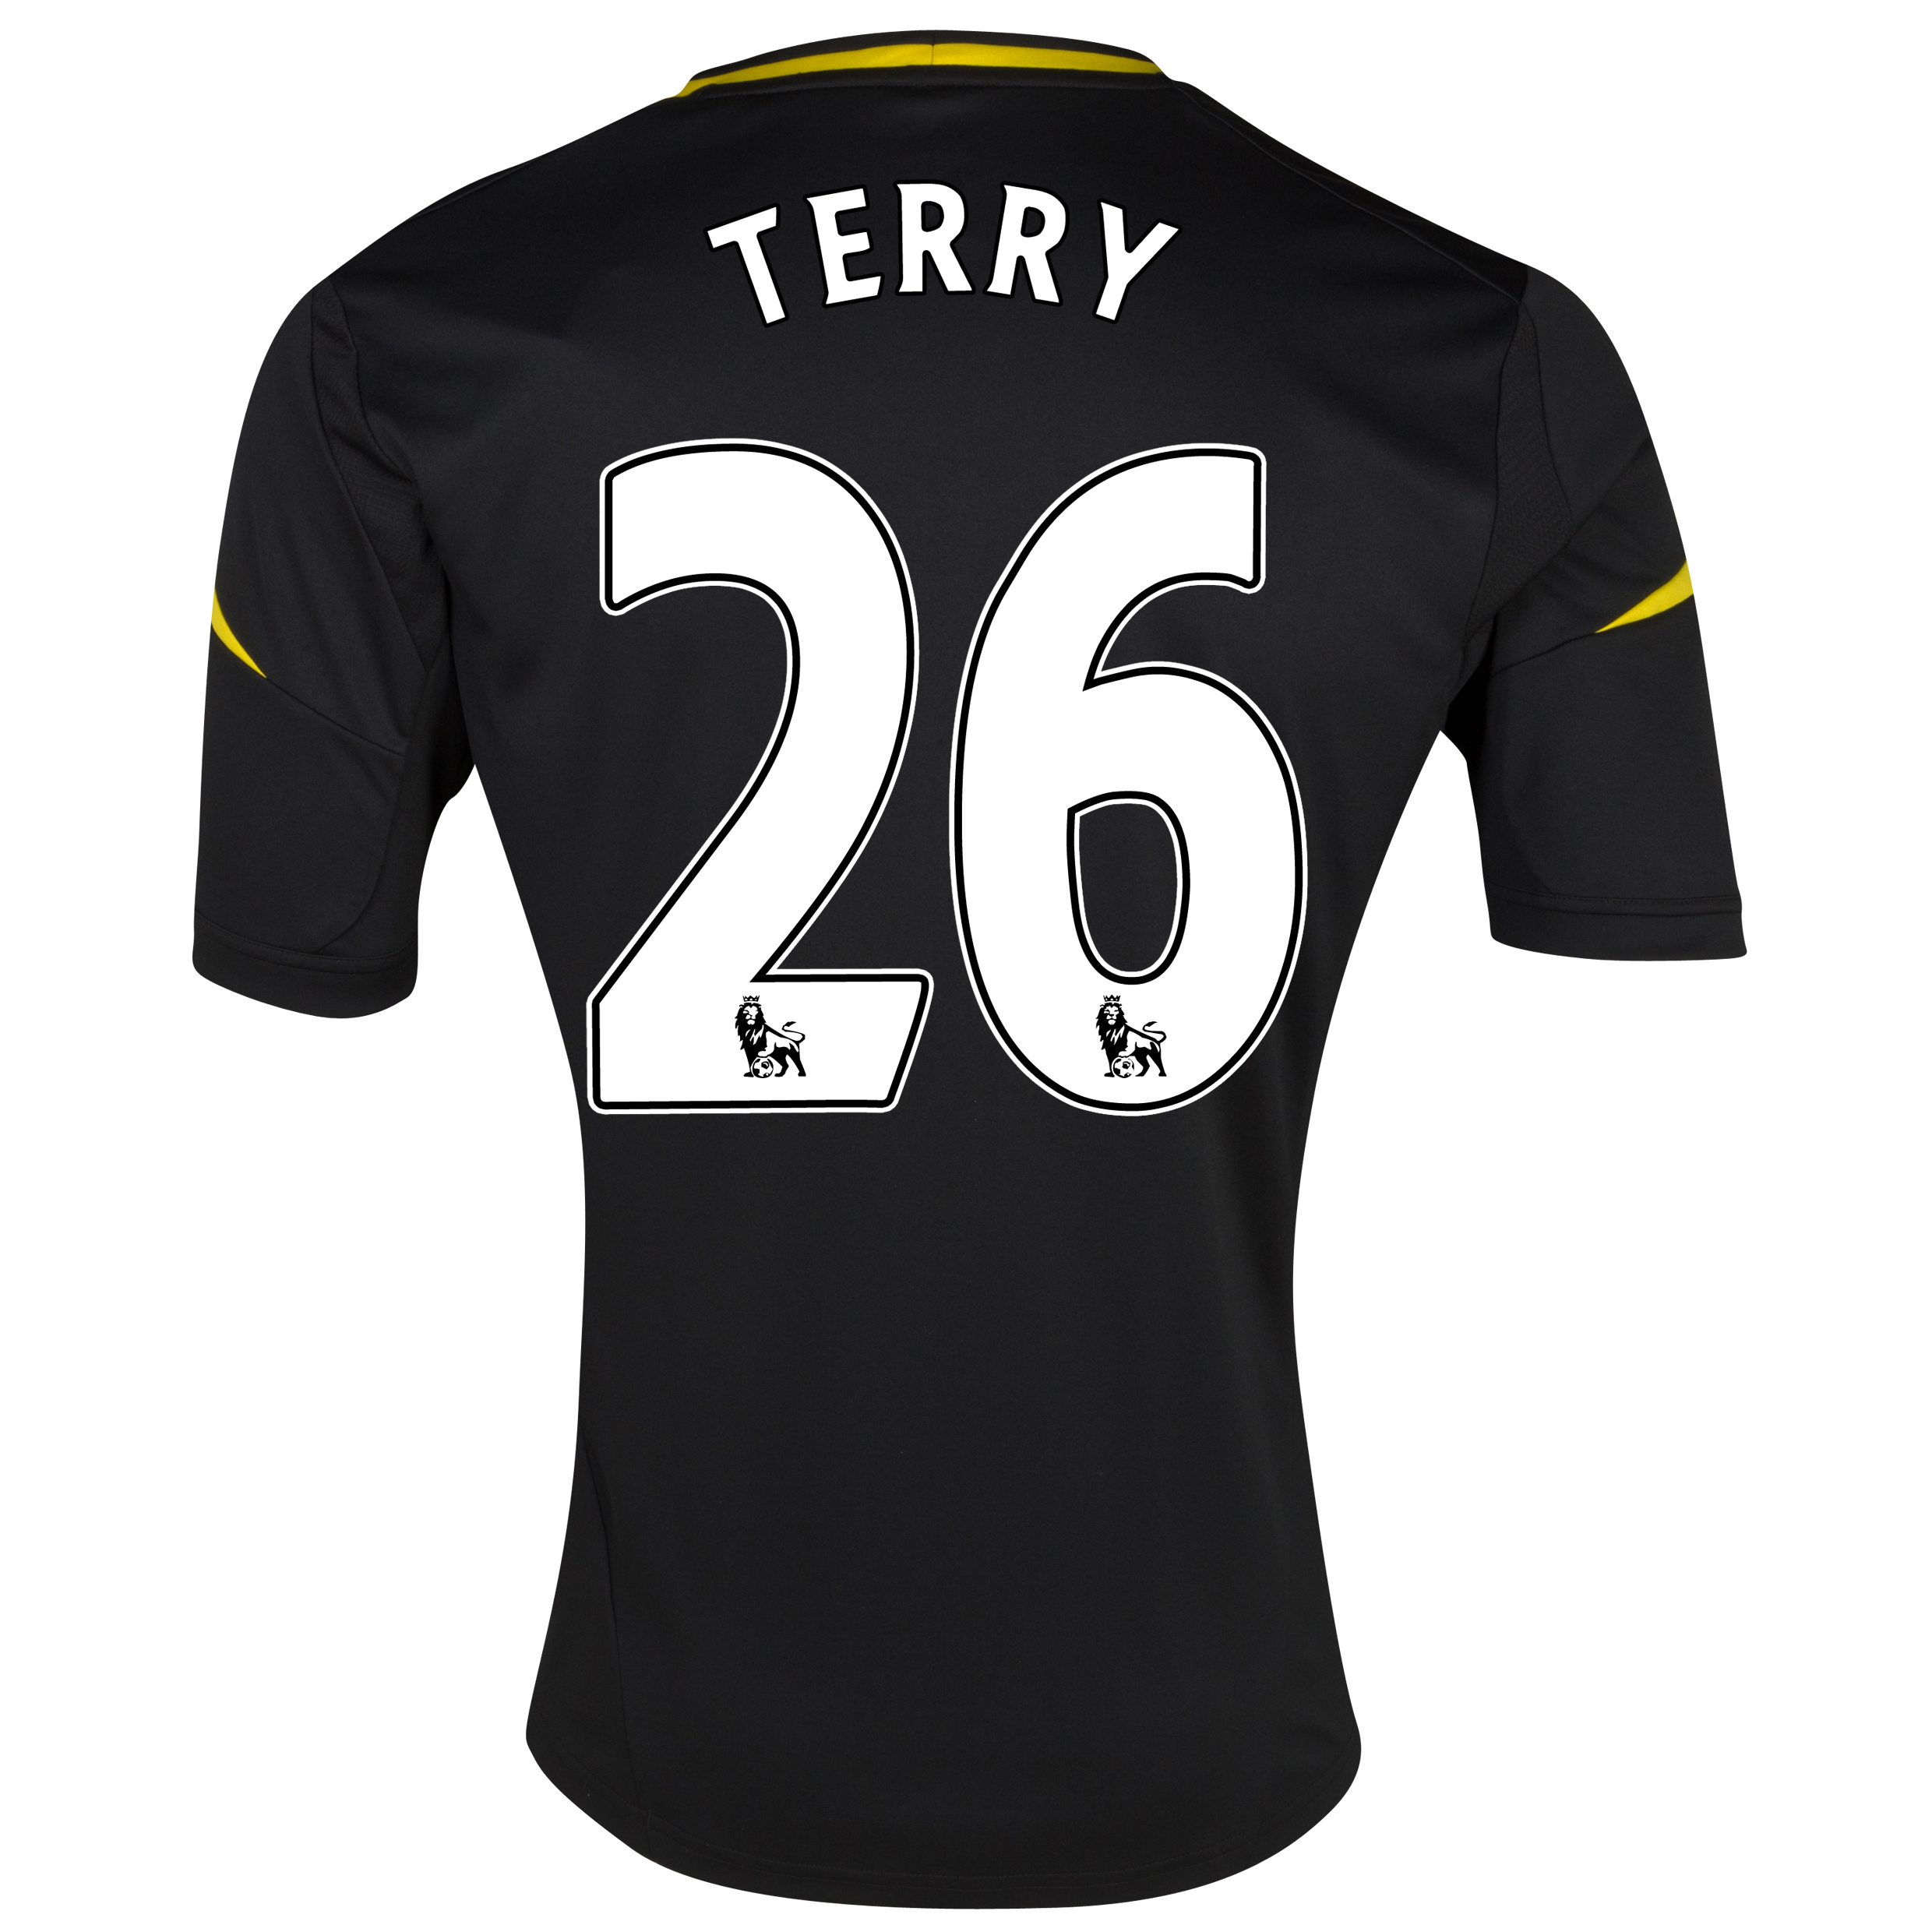 Chelsea Third Shirt 2012/13 - Youths with Terry 26 printing